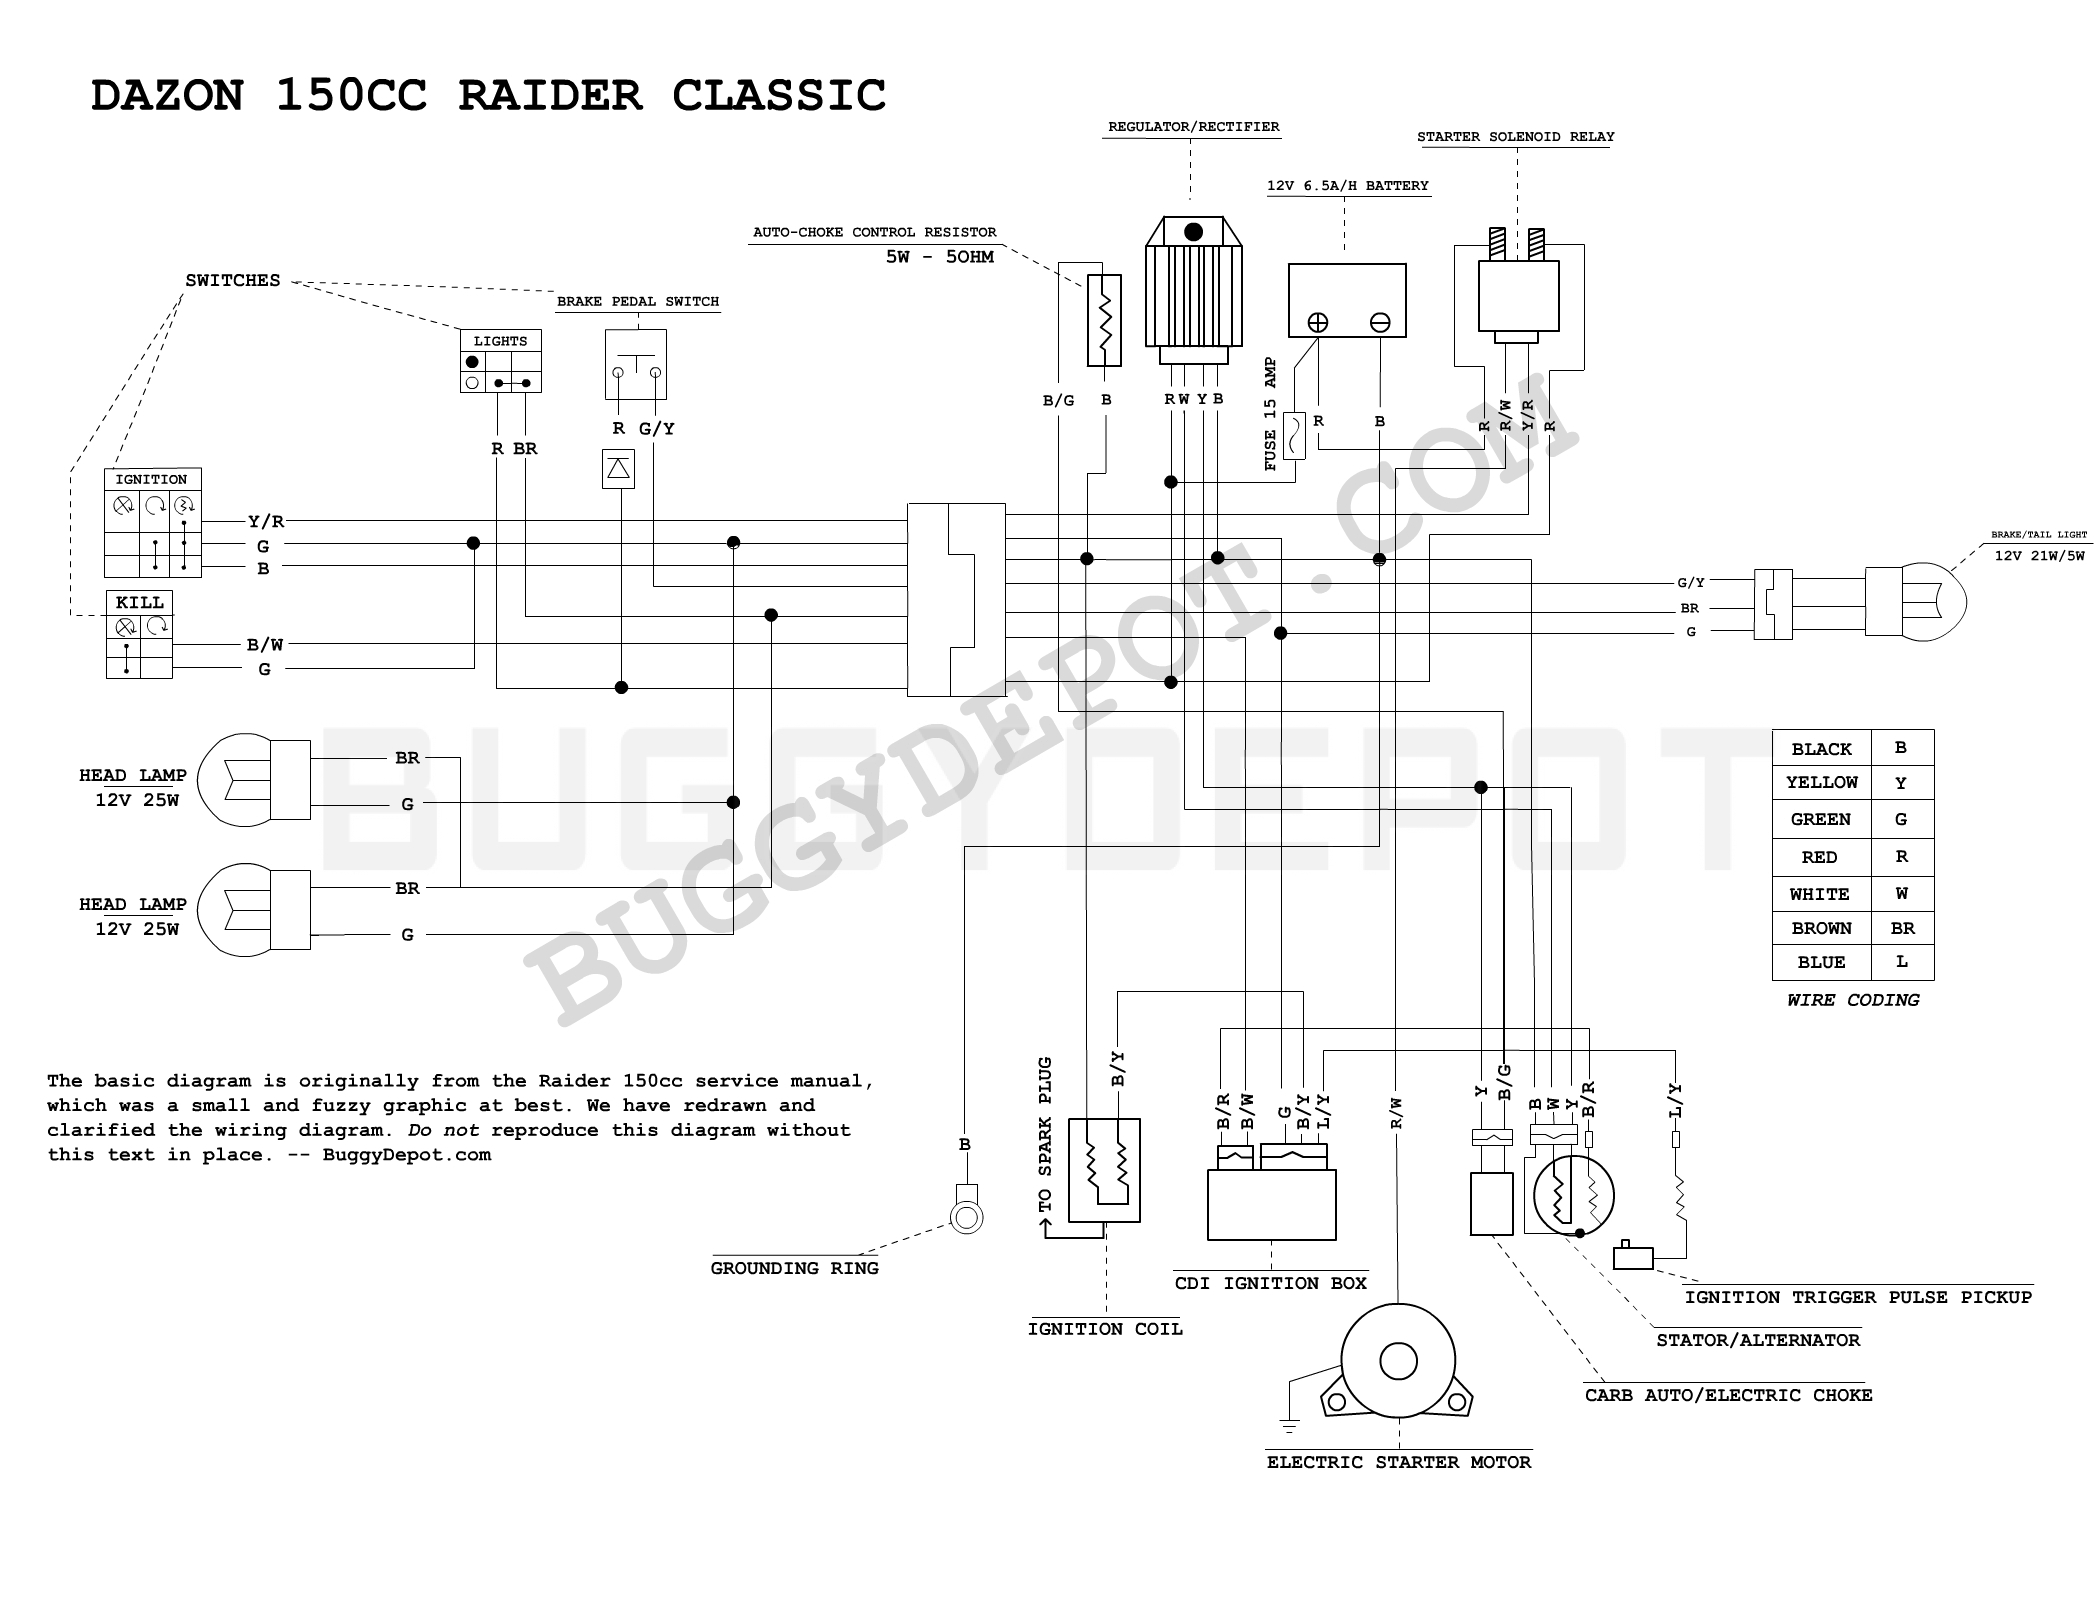 Jante Gy6 Cdi Wiring Diagram Schema Diagrams Electrical Rectifier Ruckus Racing